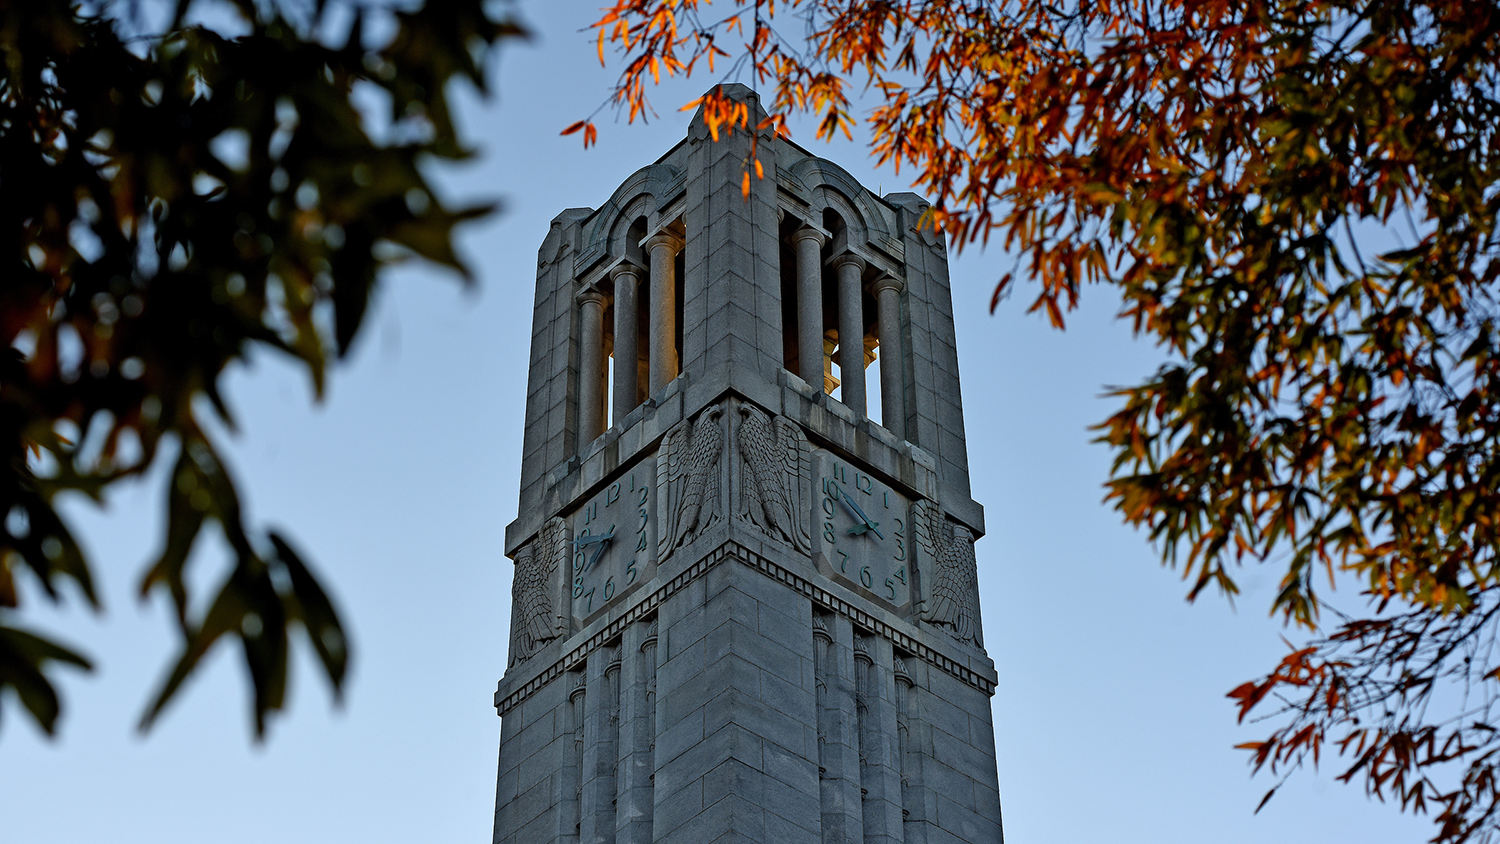 belltower peaks through fall leaves